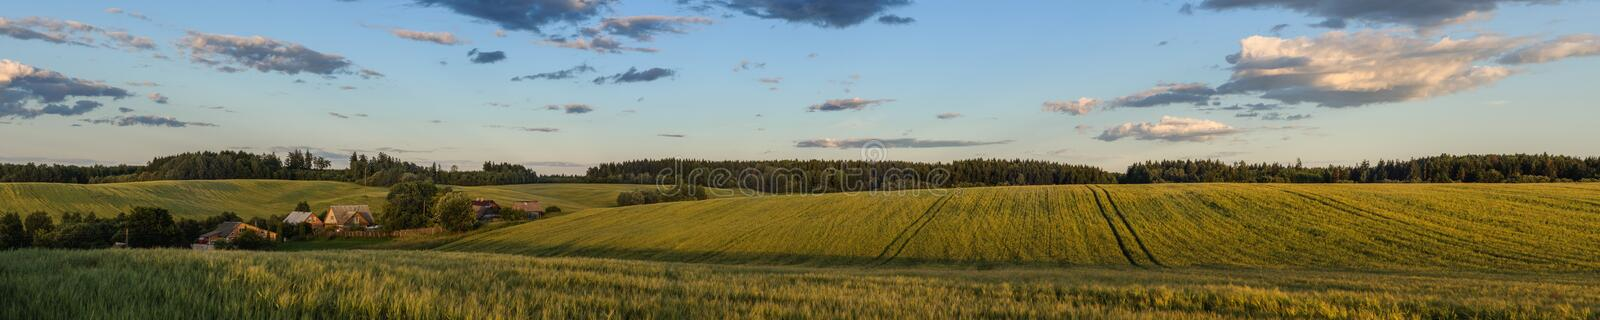 Beautiful evening summer rural landscape. scenic panoramic view of a wide hilly agricultural field in the warm light of sunset. With a small village on the left royalty free stock photo